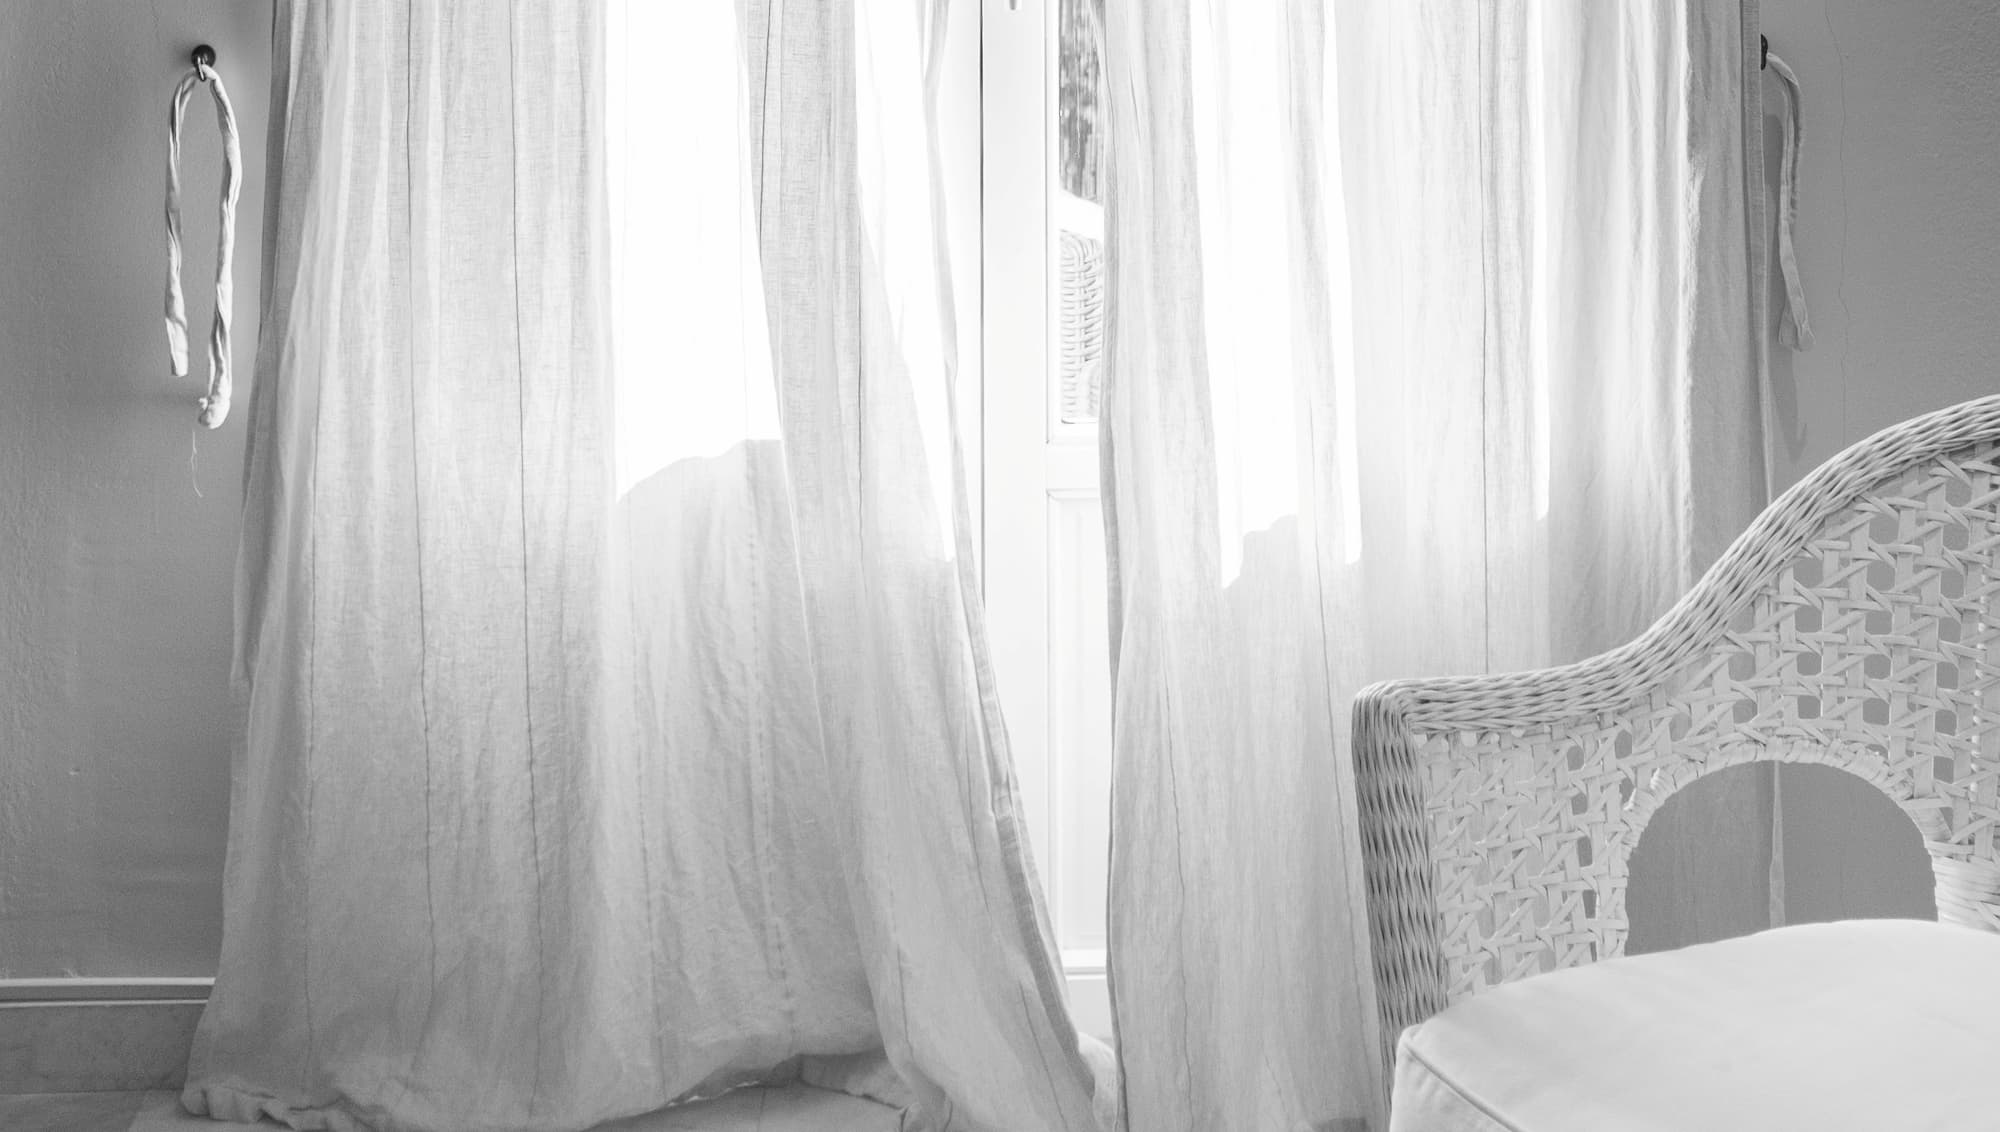 White light design - a wicker chair with a padded seat against a white cotton curtain.